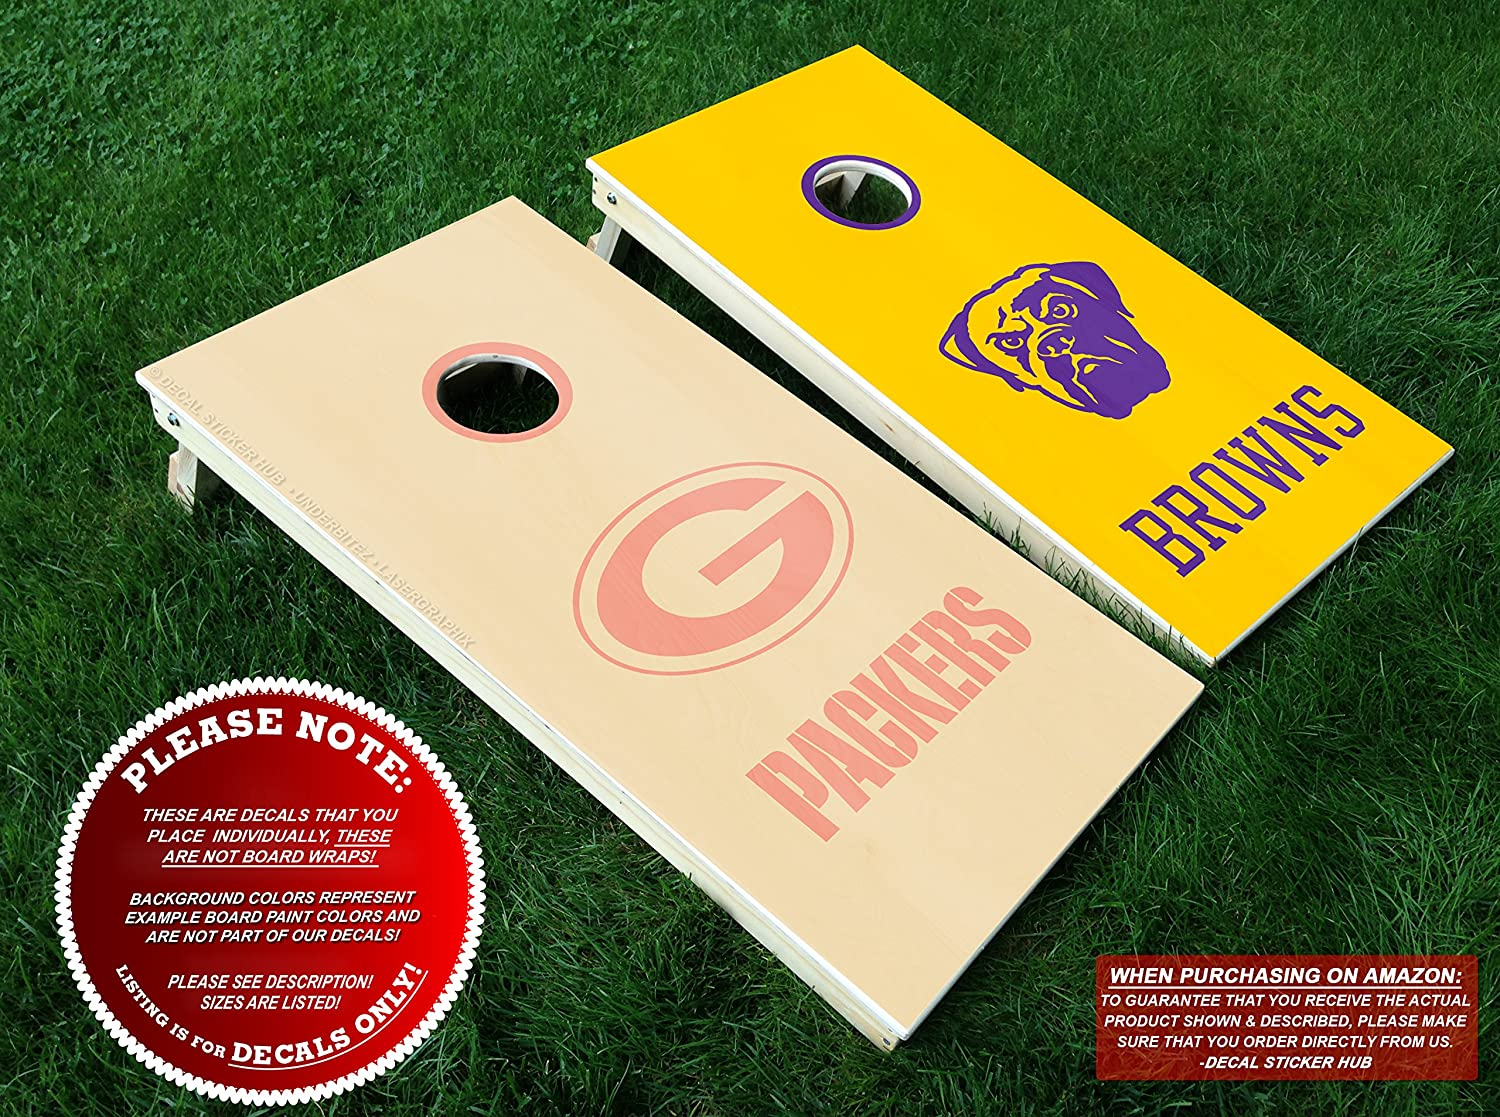 Amazon.com: Green Bay Packers vs Cleveland Browns Cornhole Decals ...